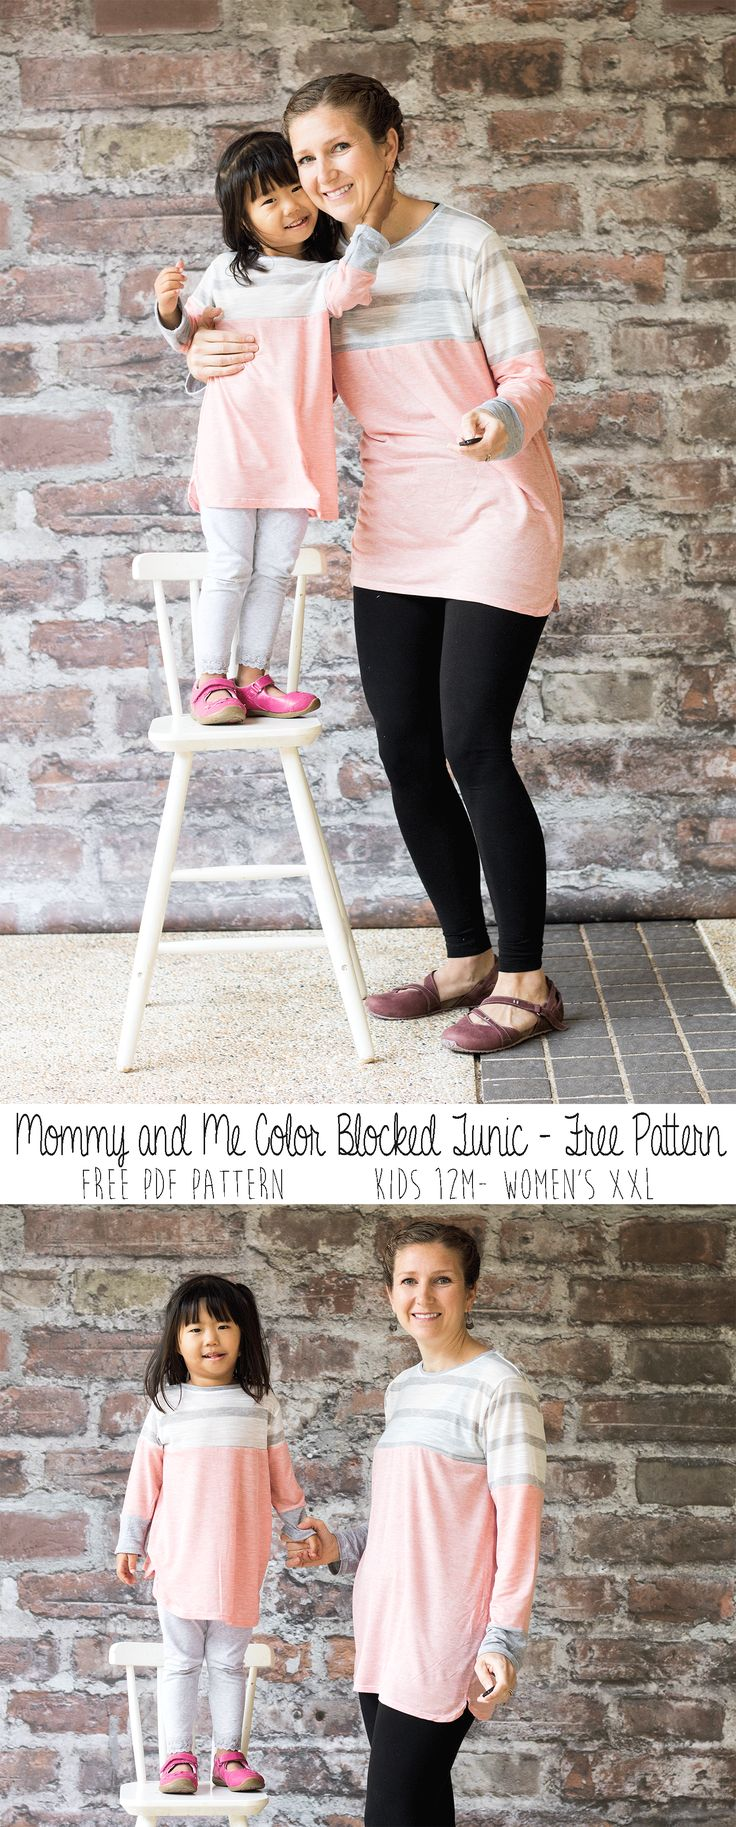 mommy-and-me Color Blocked Tunic Free Pattern -tutorial-and-free-pdf-pattern-from-nap-time-creations